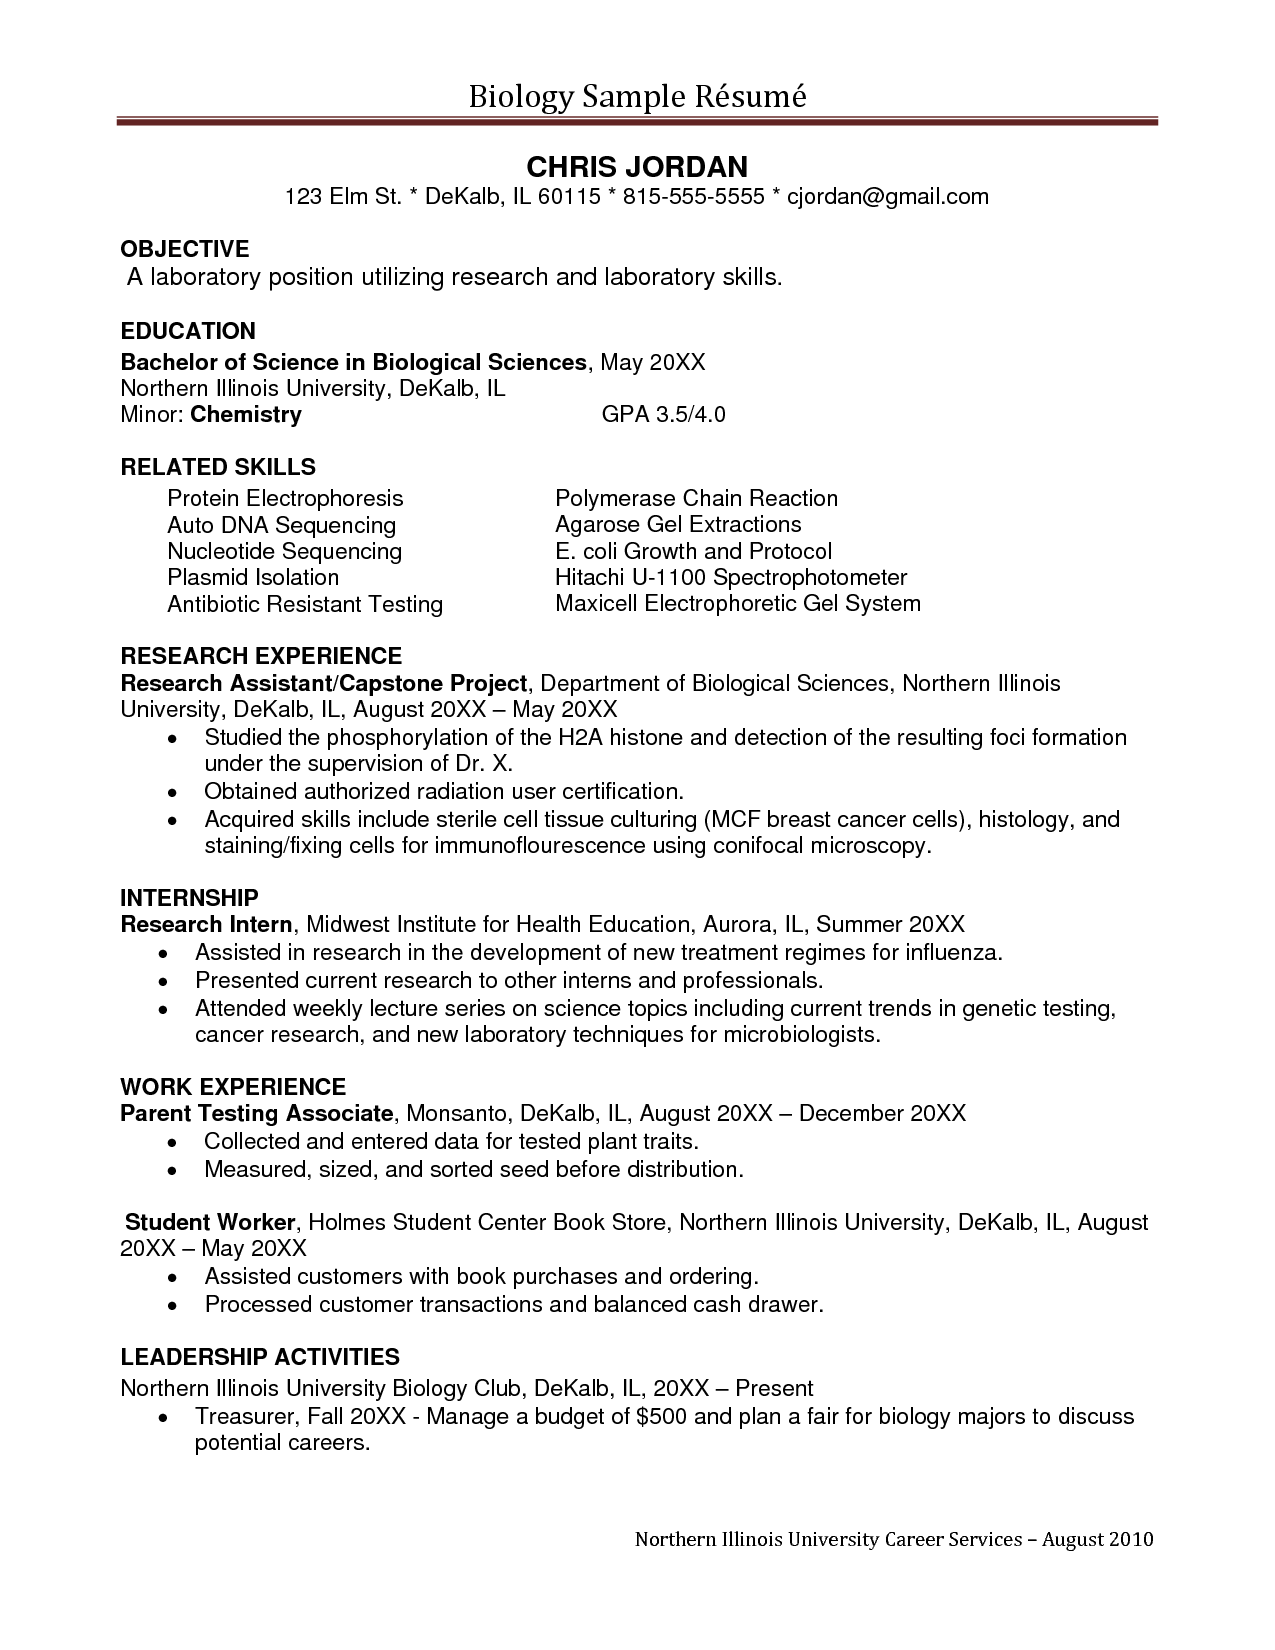 Administrative Assistant Resume Objective Examples Sample Undergraduate Research Assistant Resume Sampleĺ